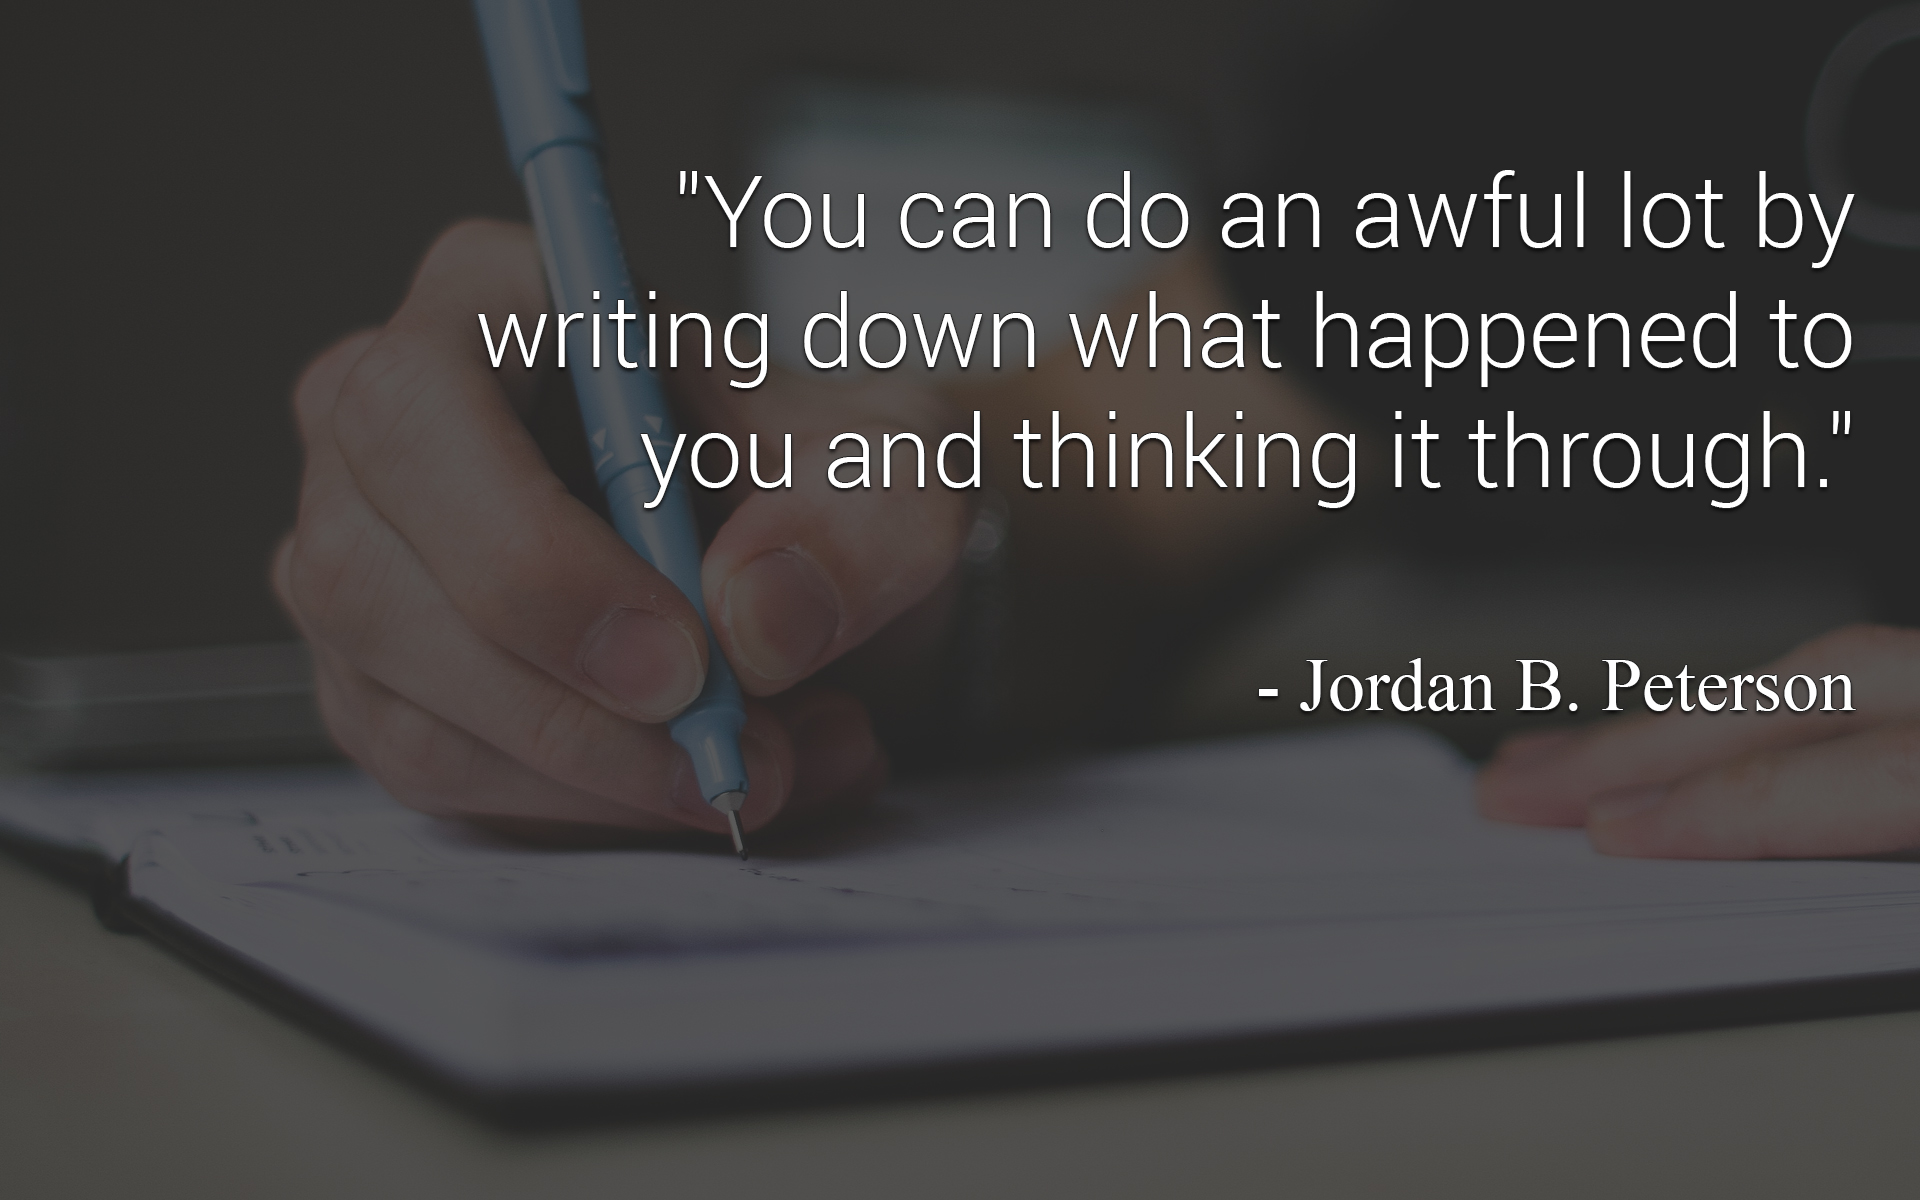 Write the first draft of an essay quickly, trying out all sorts of ideas.Then rewrite it very carefully, being sure to sift out anything that you're not sure of, or that is not true.Useful writing makes claims that are as strong as they can be without overstating it.